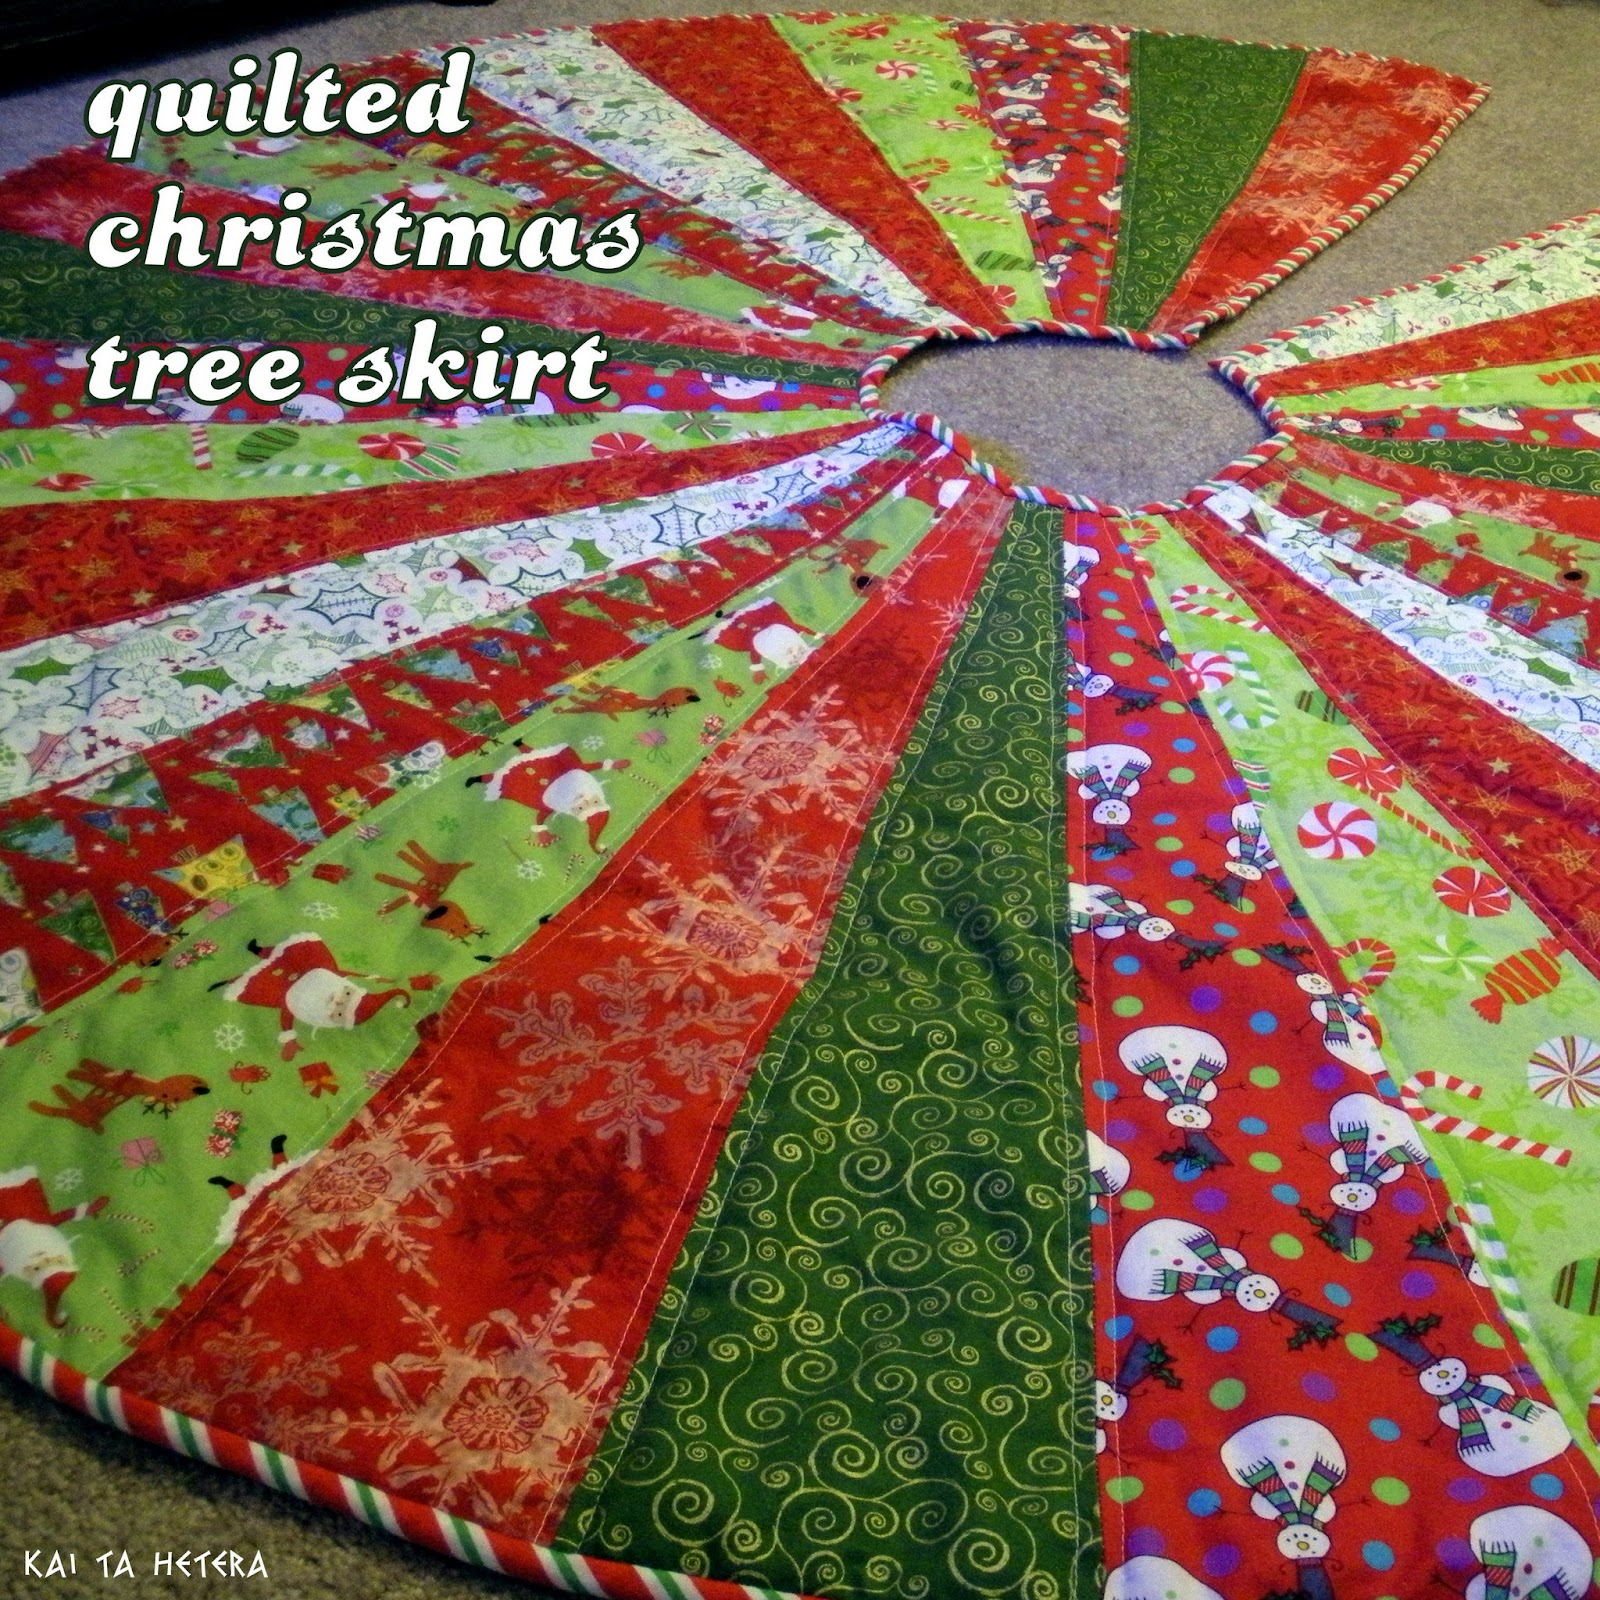 Quilted Christmas Tree Skirt Patterns: Kai Ta Hetera: Quilted Christmas Tree Skirt